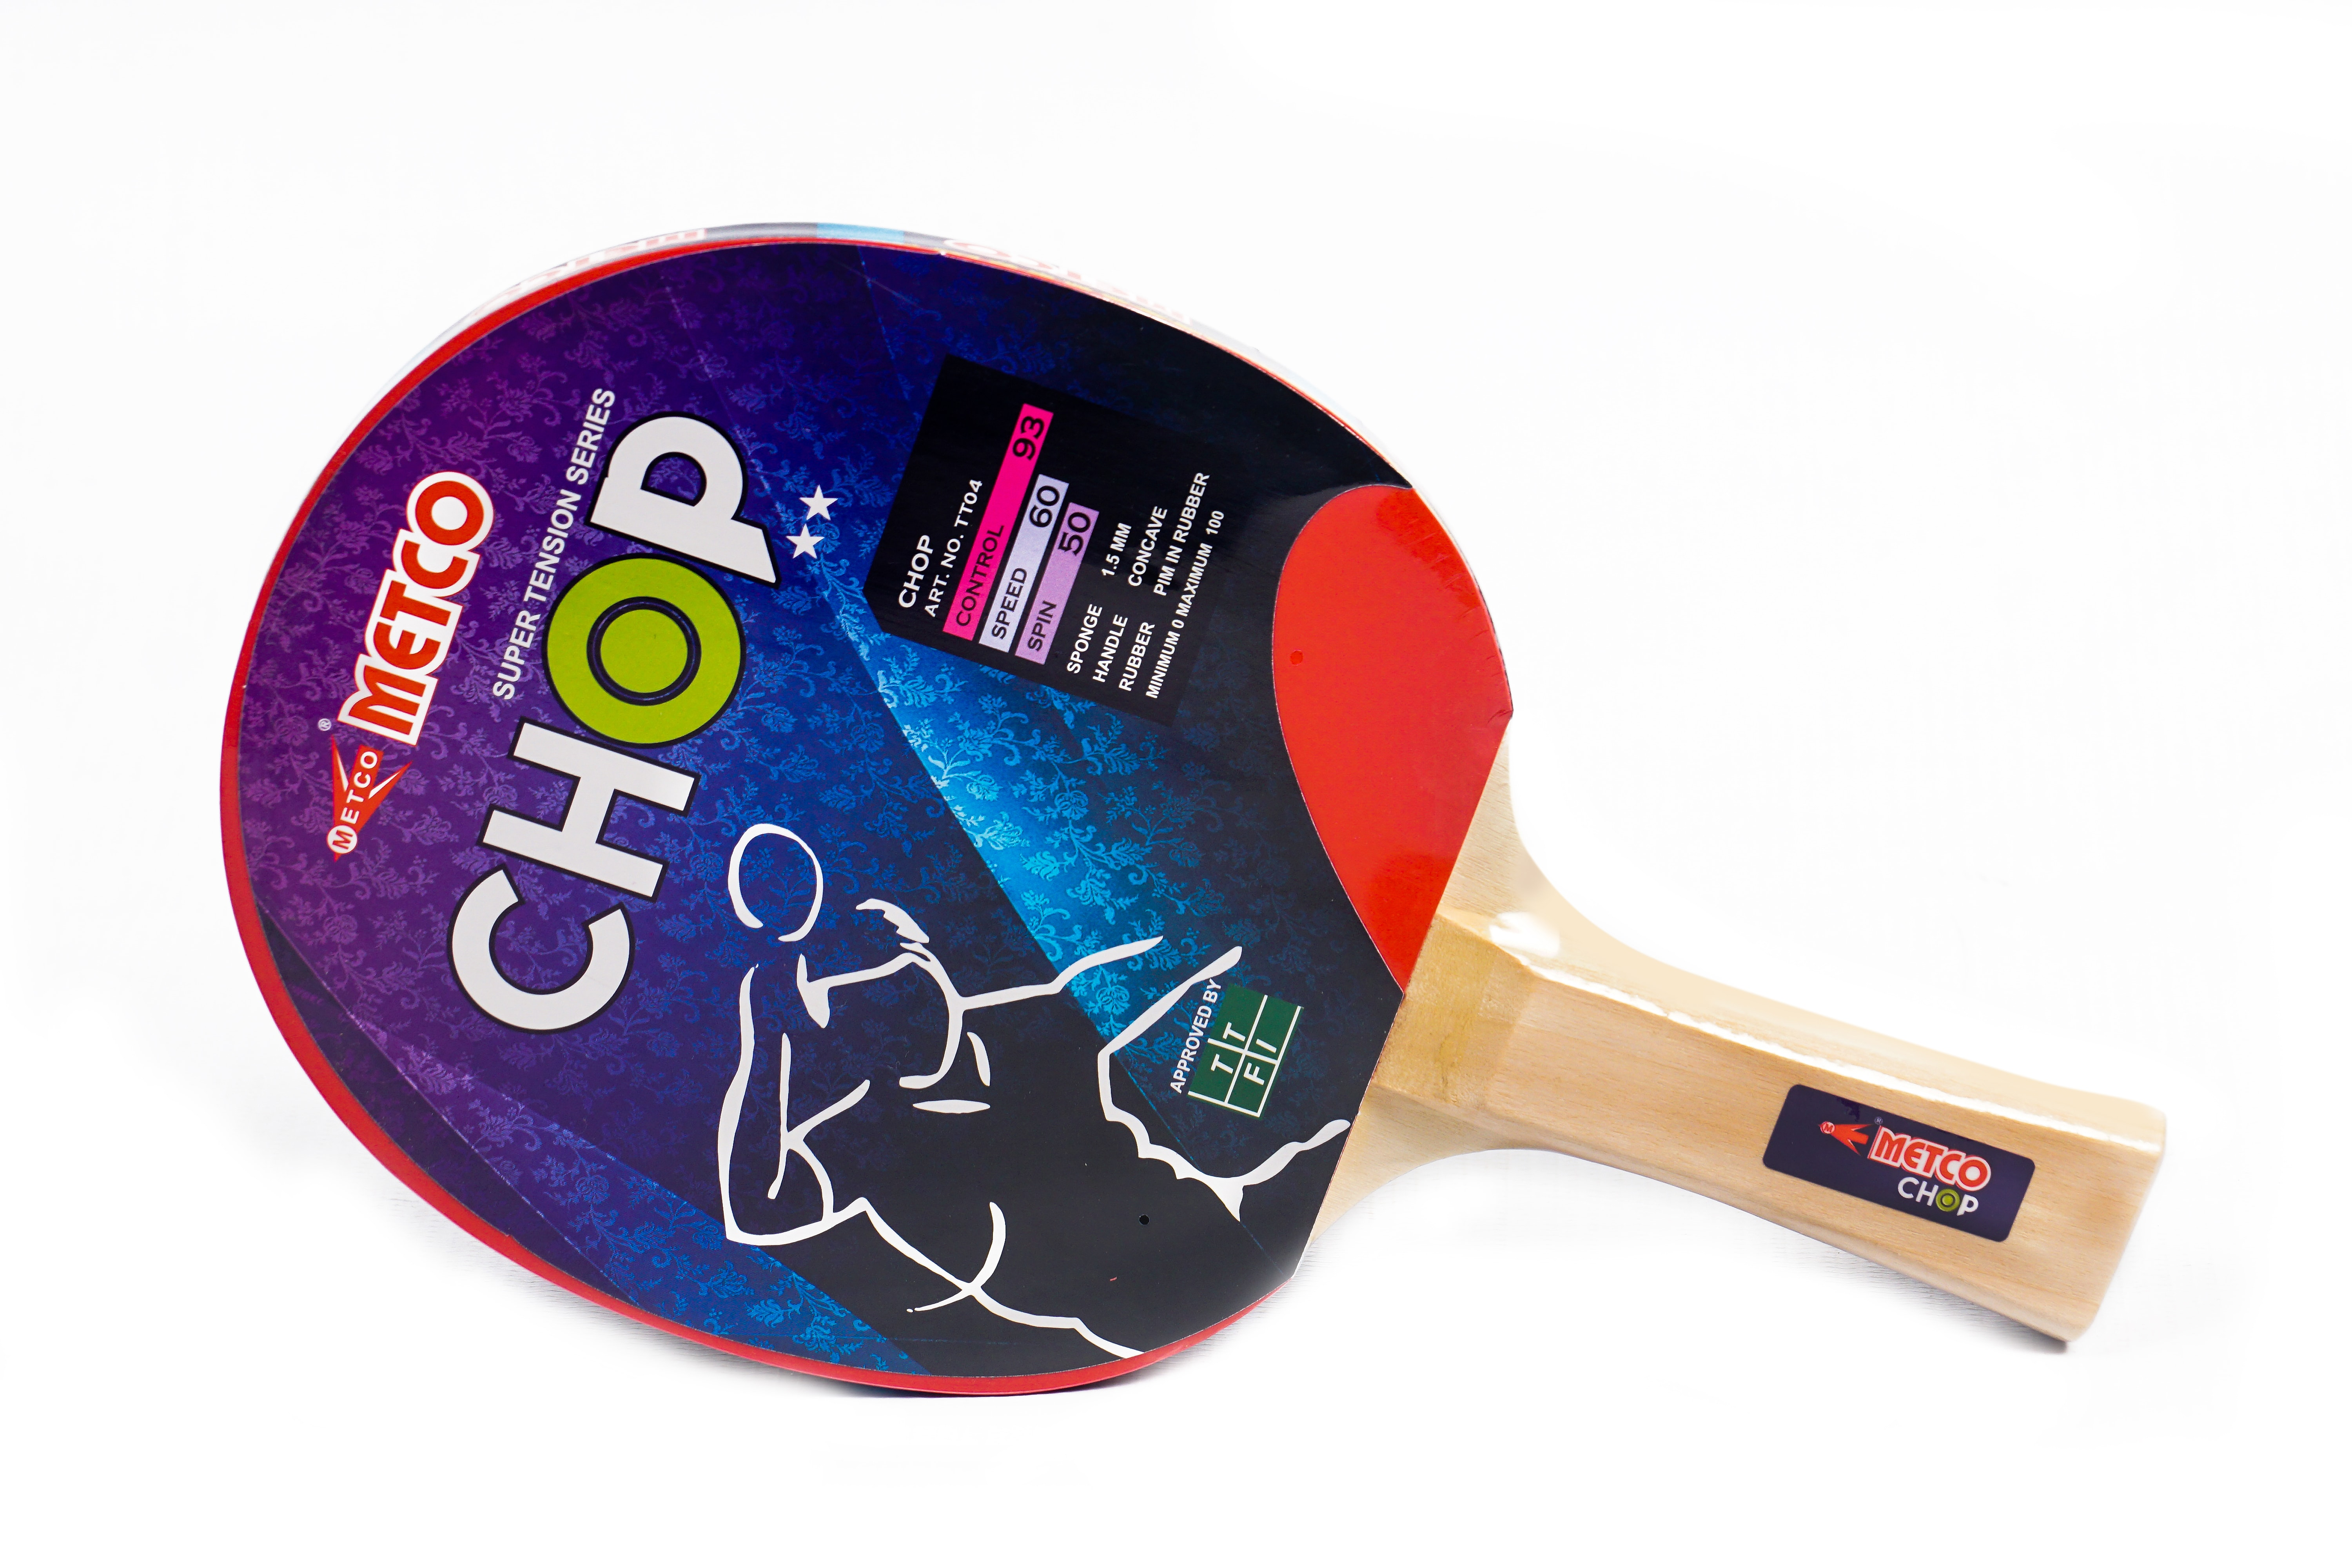 Metco Chop 2 Star Table Tennis Racket